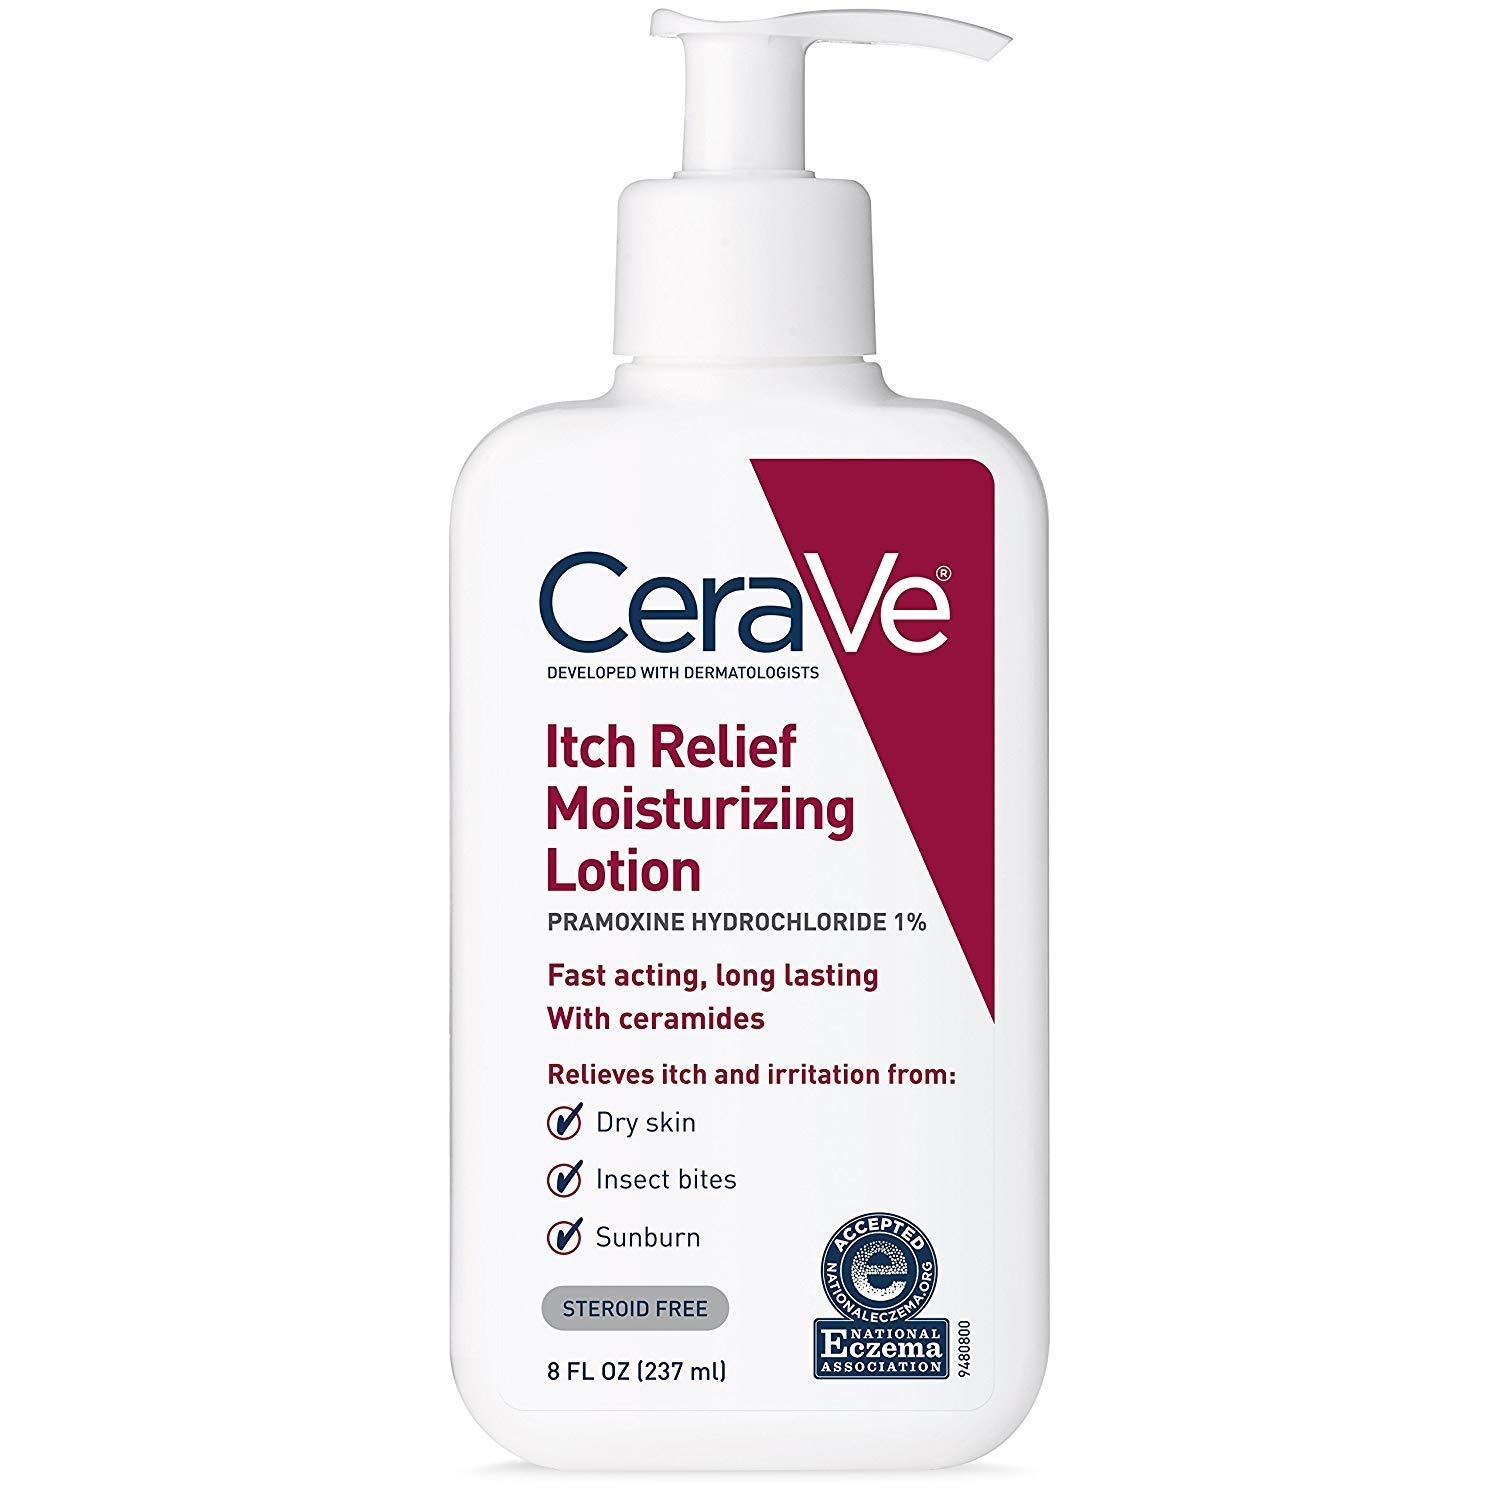 CeraVe Itch Relief Moisturizing Lotion - 8 oz, Pack of 4